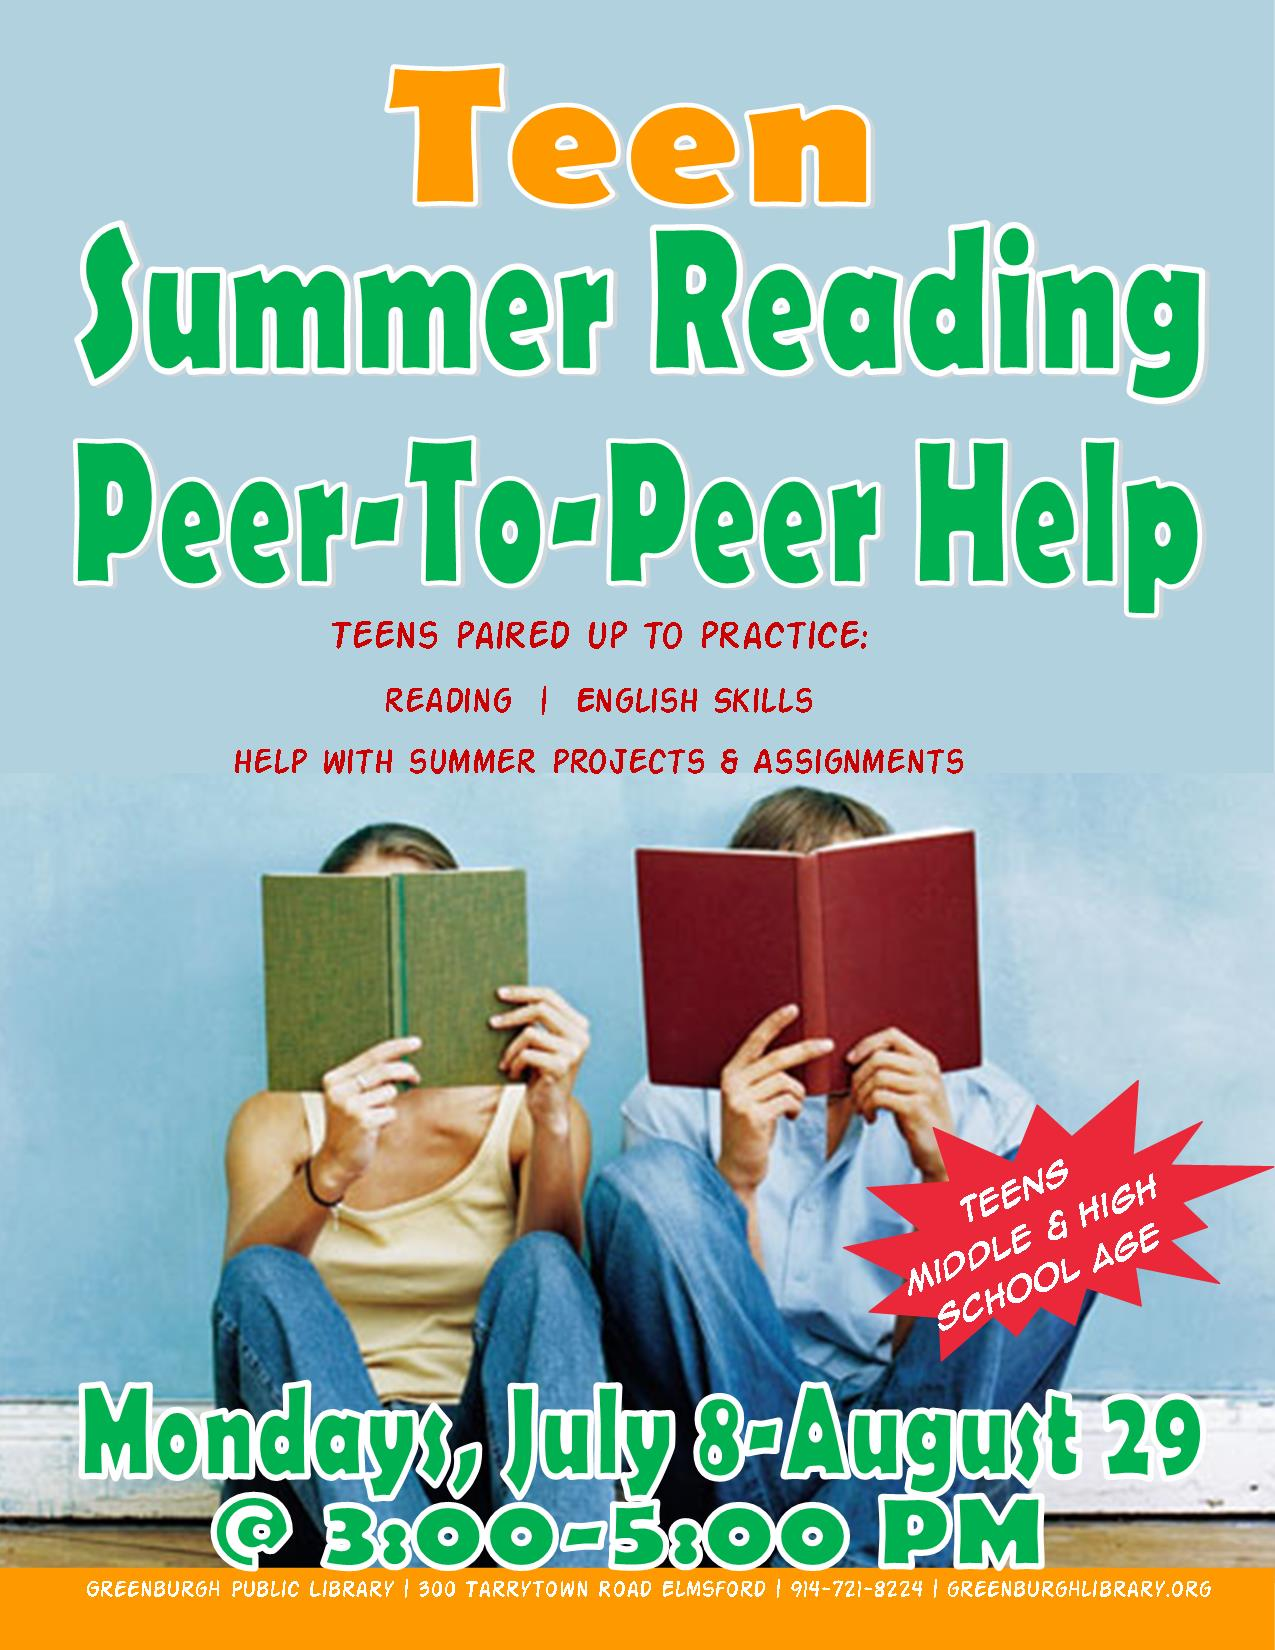 Teen Summer Reading Peer to Peer Help